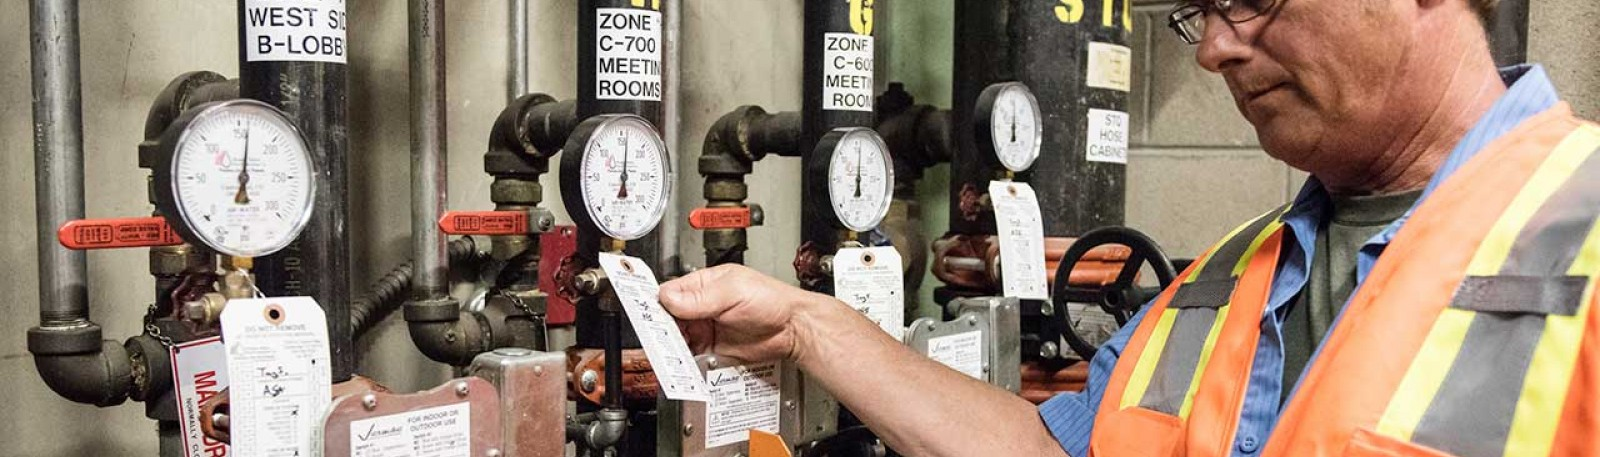 Fire Suppression, Fire Alarm & Fire Sprinkler Inspections